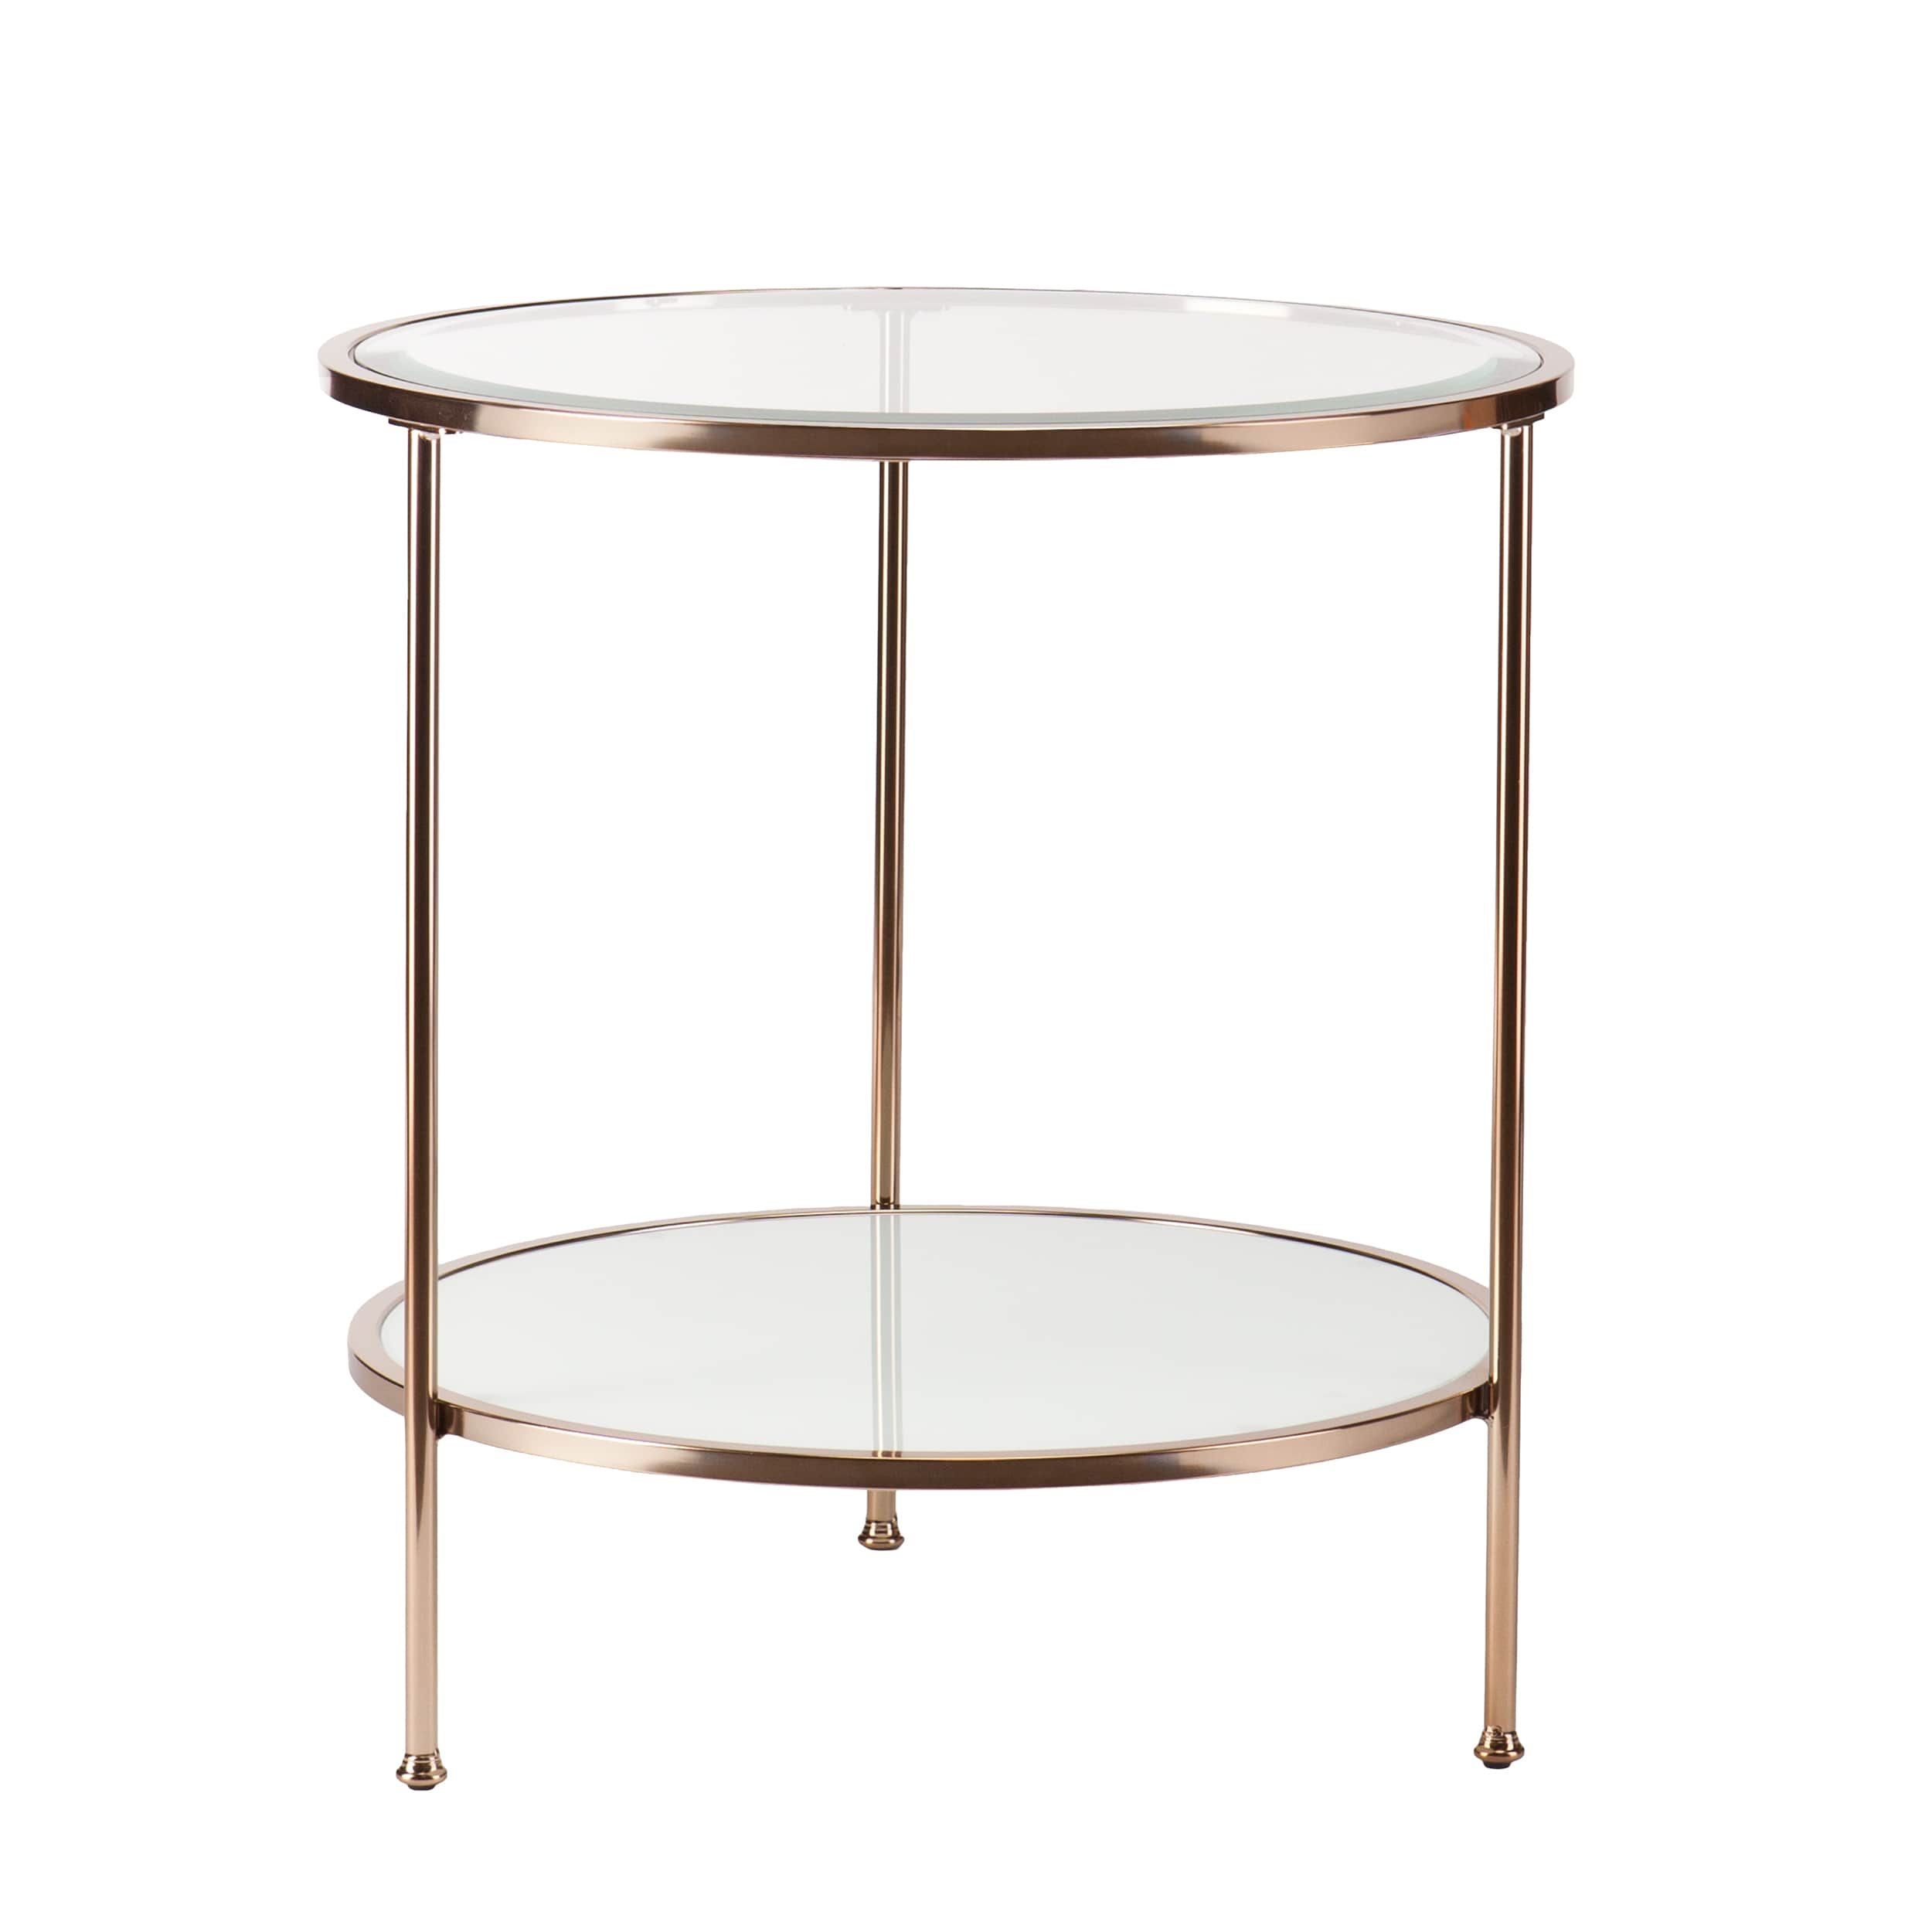 silver orchid grant side end table tables coffee tall glass accent black area rugs top for jcpenney furniture clearance kidney teak garden and chairs art deco lighting pier